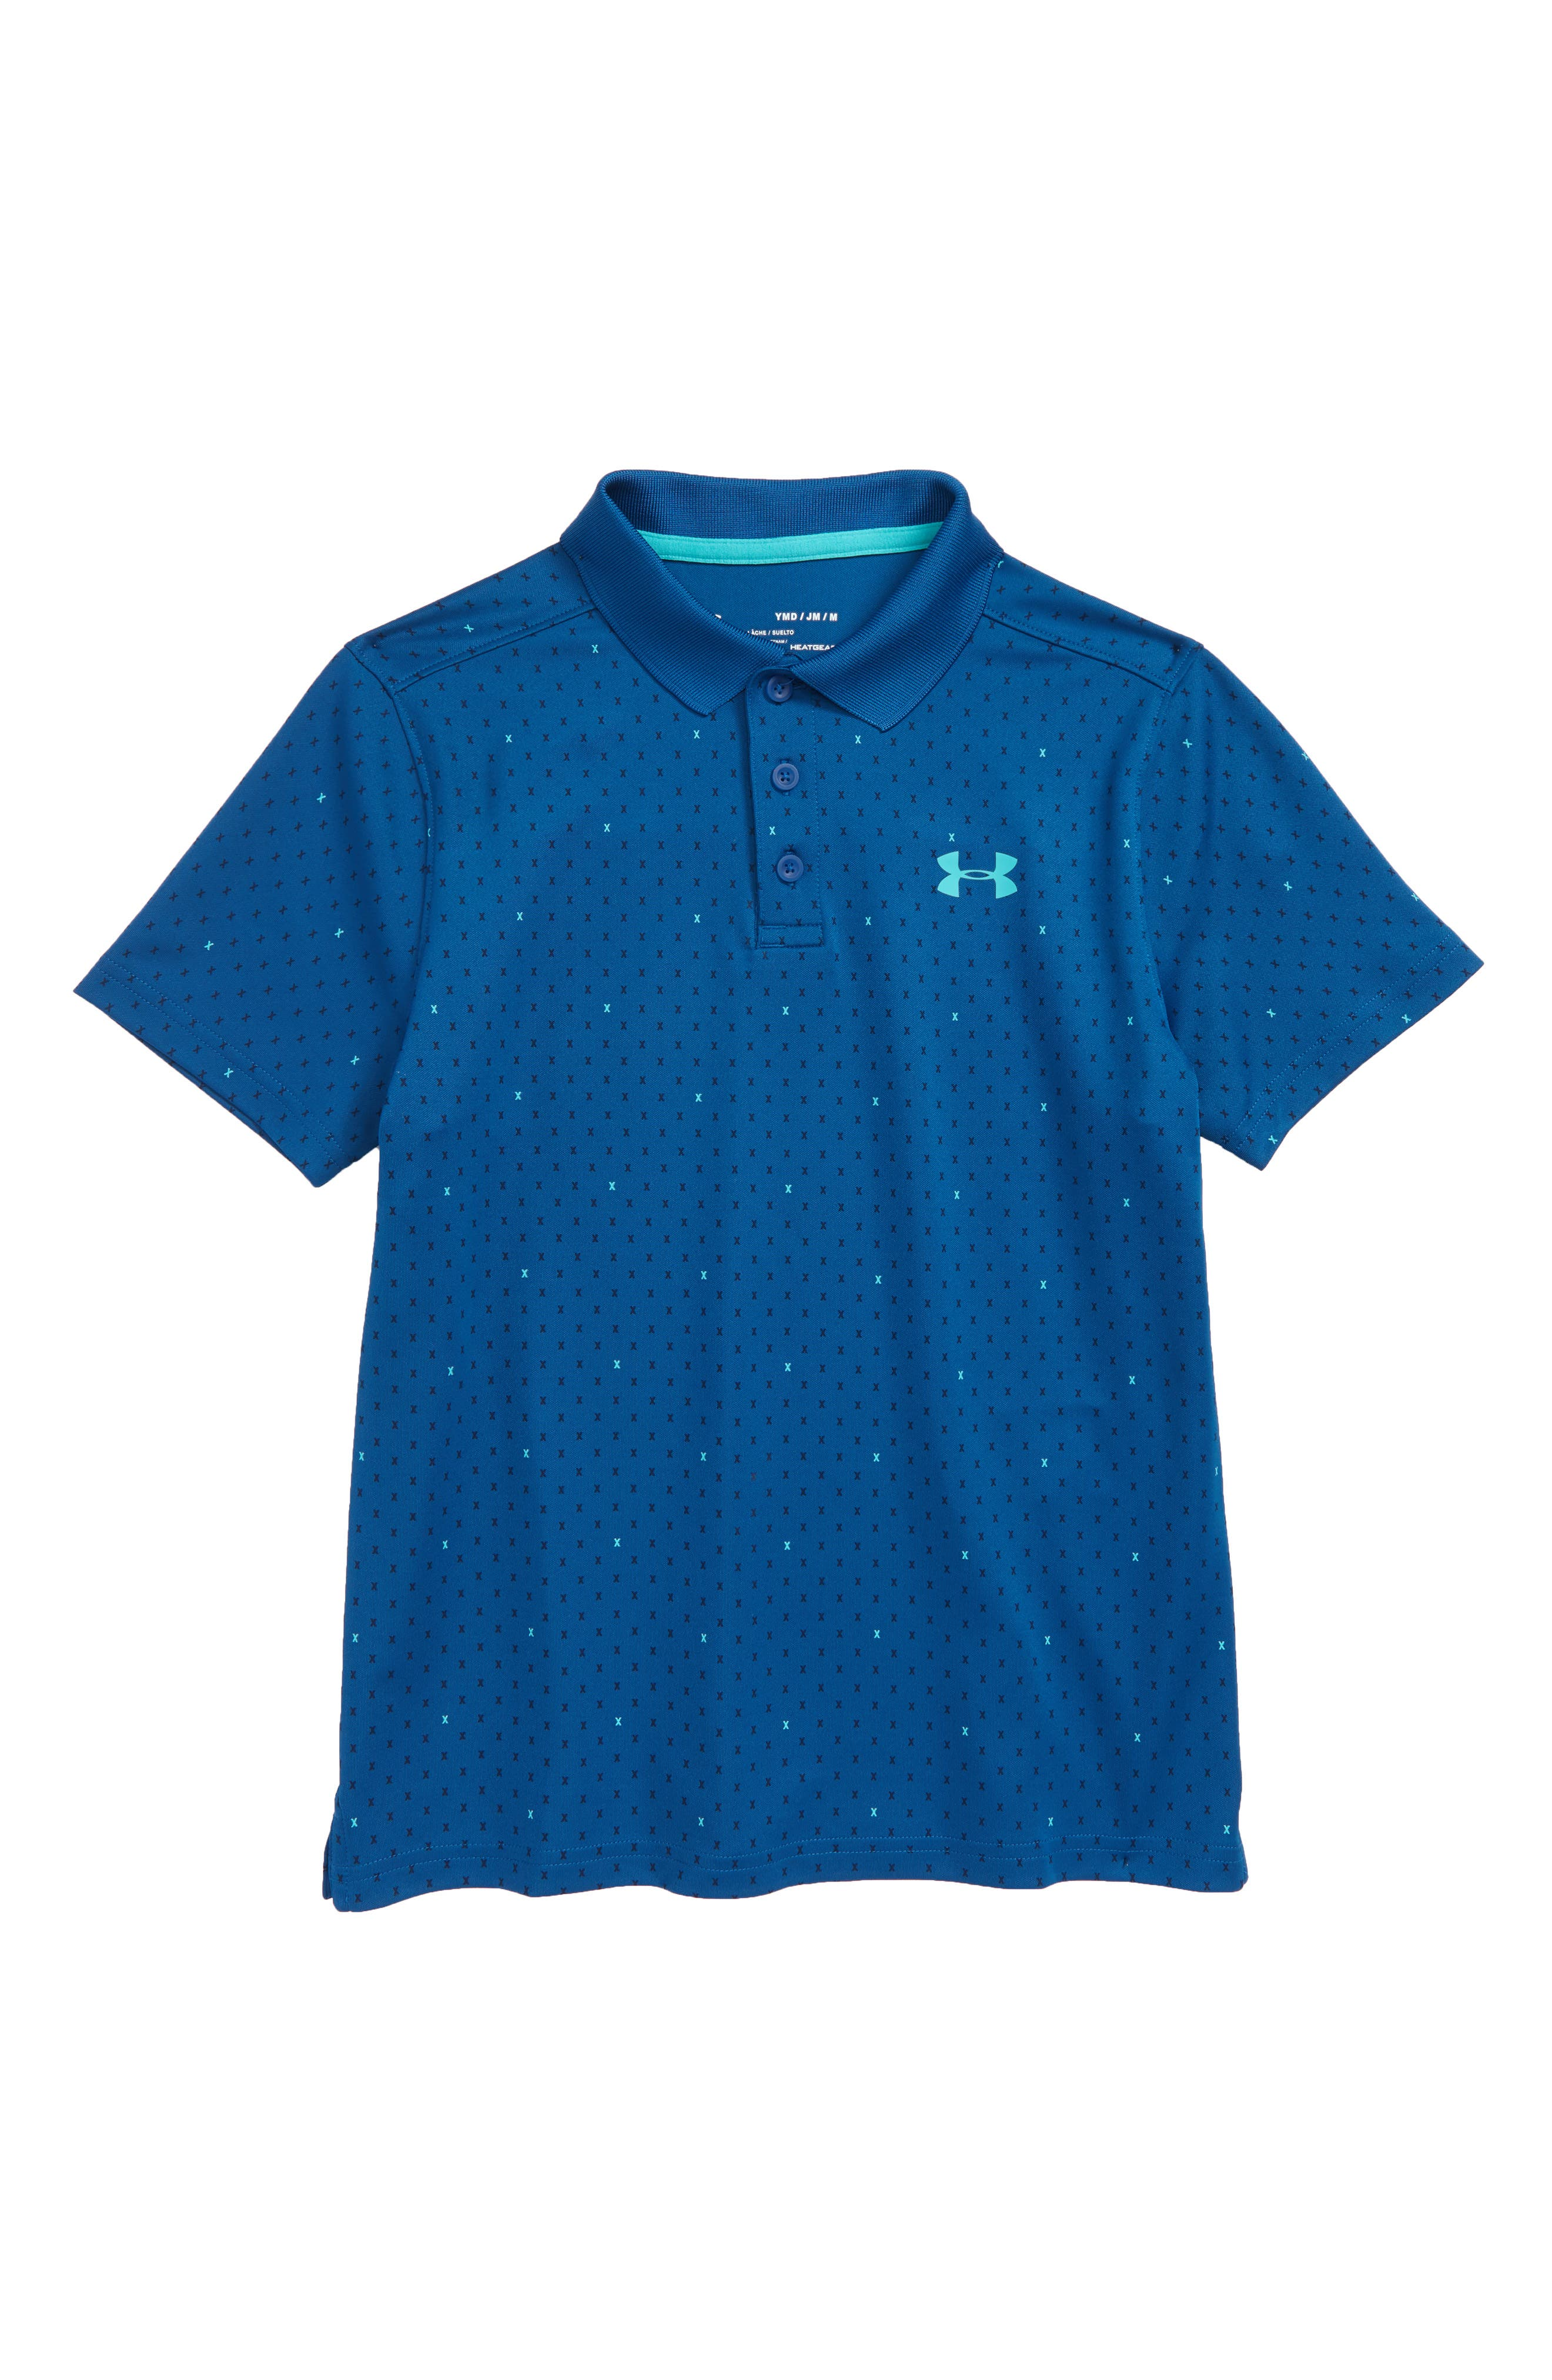 HeatGear<sup>®</sup> Polo,                         Main,                         color, Moroccan Blue/ Teal Punch